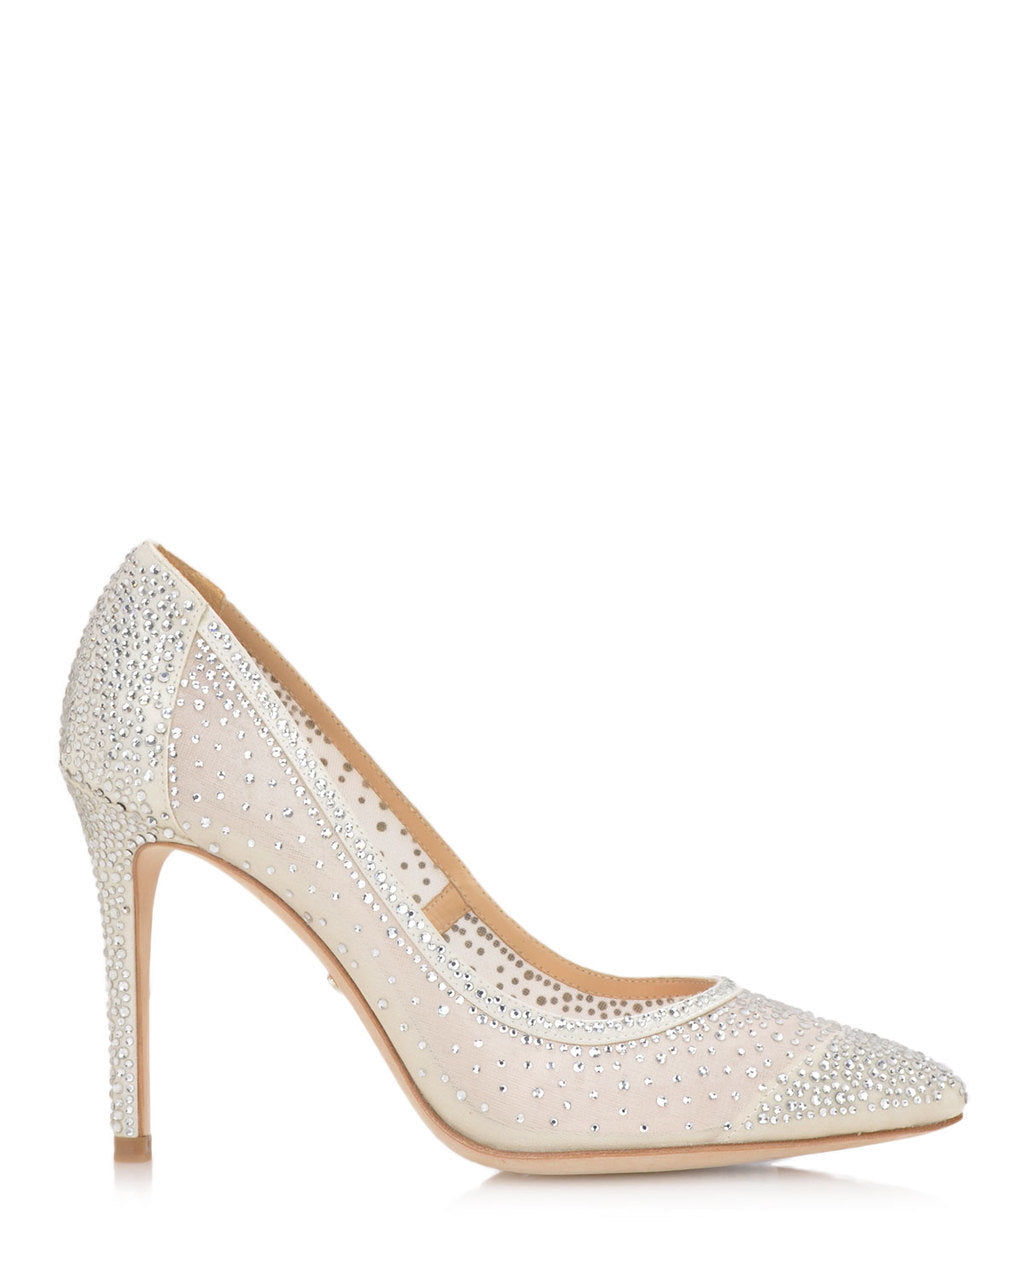 Weslee Crystal Embellished Evening Shoe